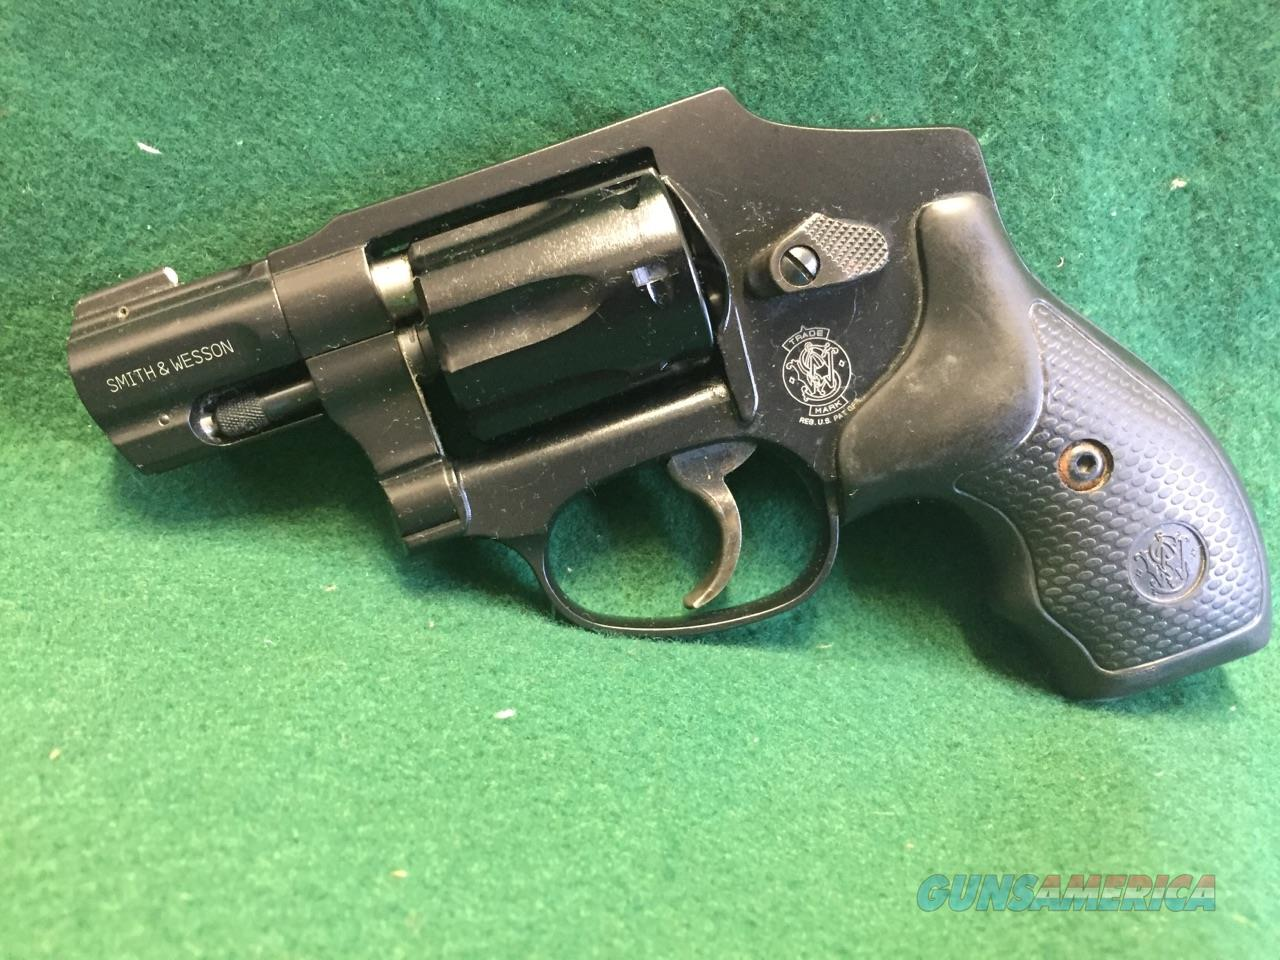 Smith & Wesson Model 351C 22 Magnum  Guns > Pistols > Smith & Wesson Revolvers > Small Frame ( J )